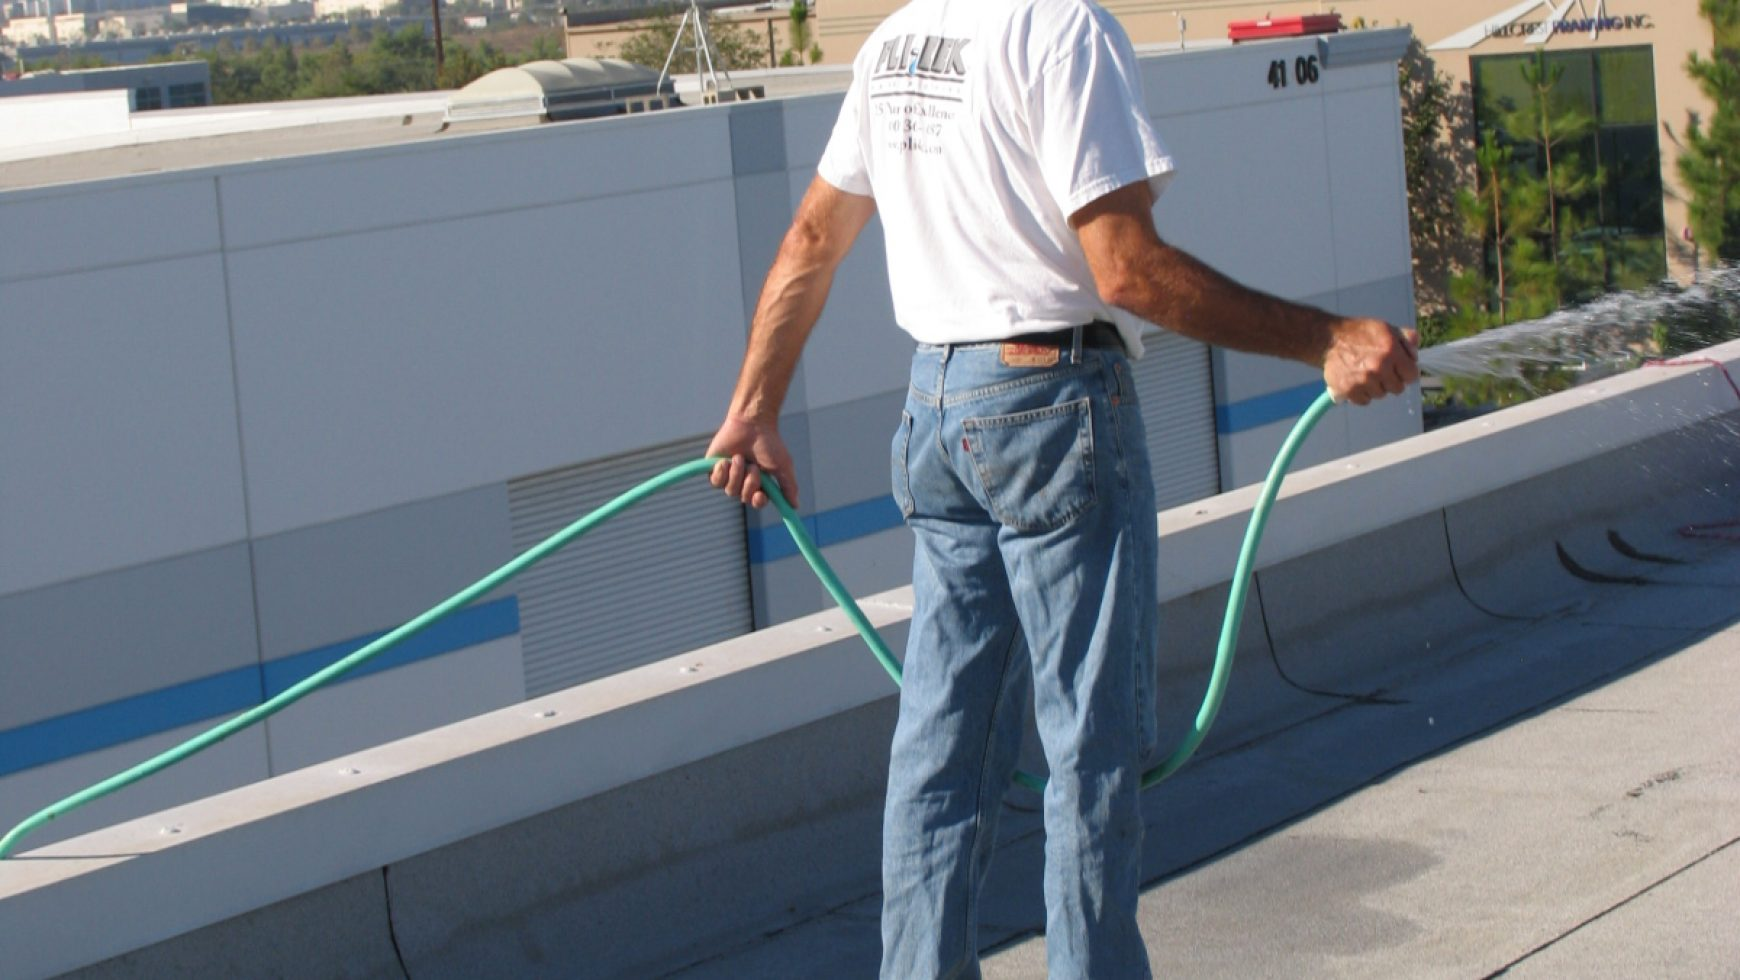 A Few Safety Tips to Keep in Mind When on a Flat Roof